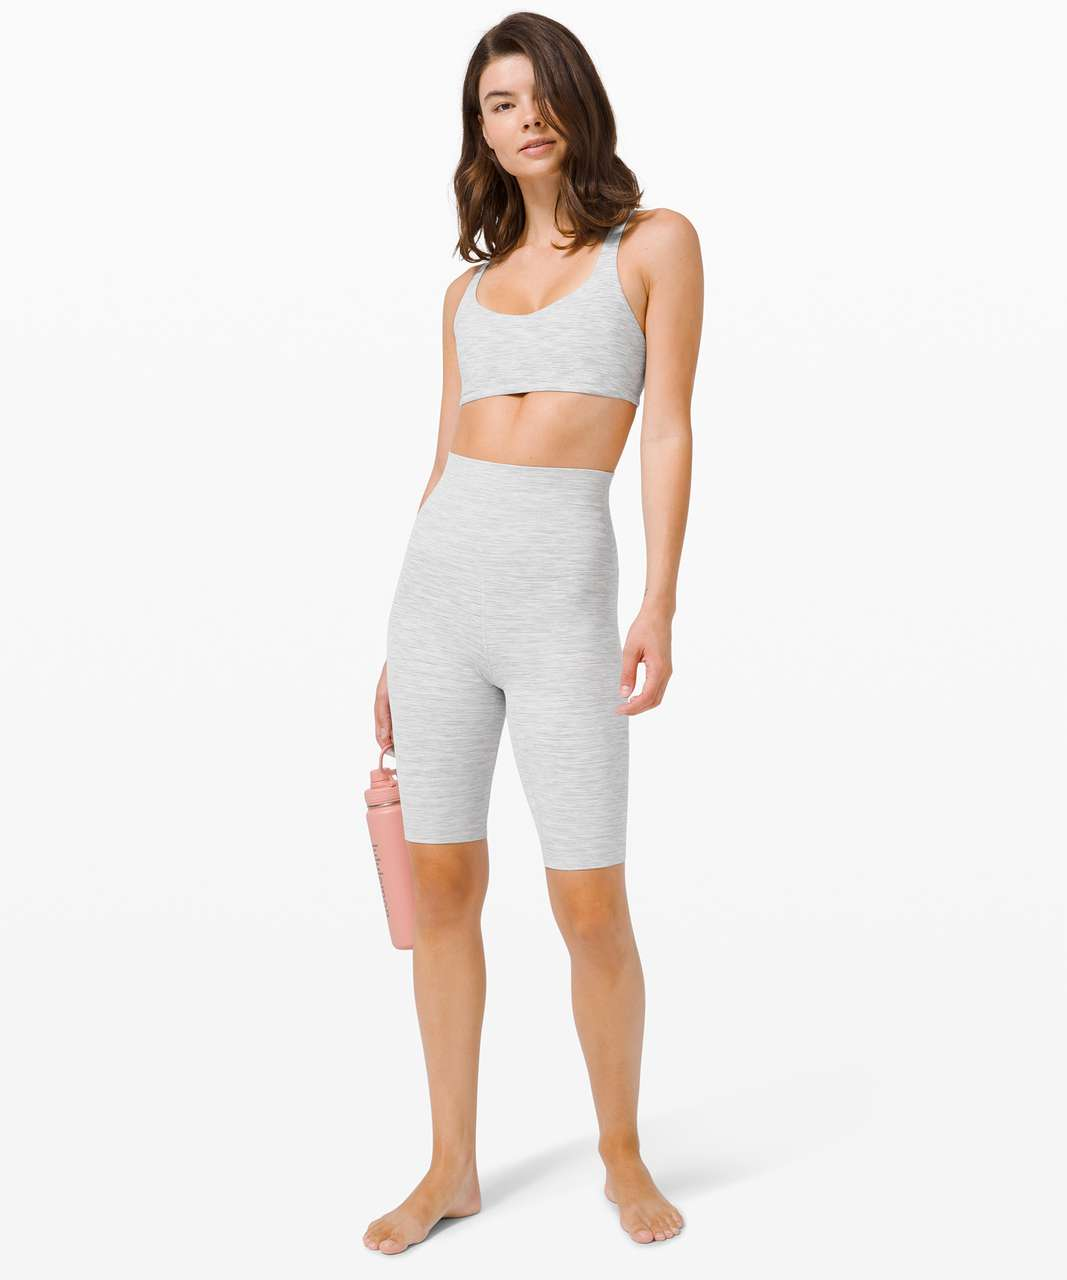 Lululemon Free To Be Bra Wild *Light Support, A/B Cup - Wee Are From Space Nimbus Battleship